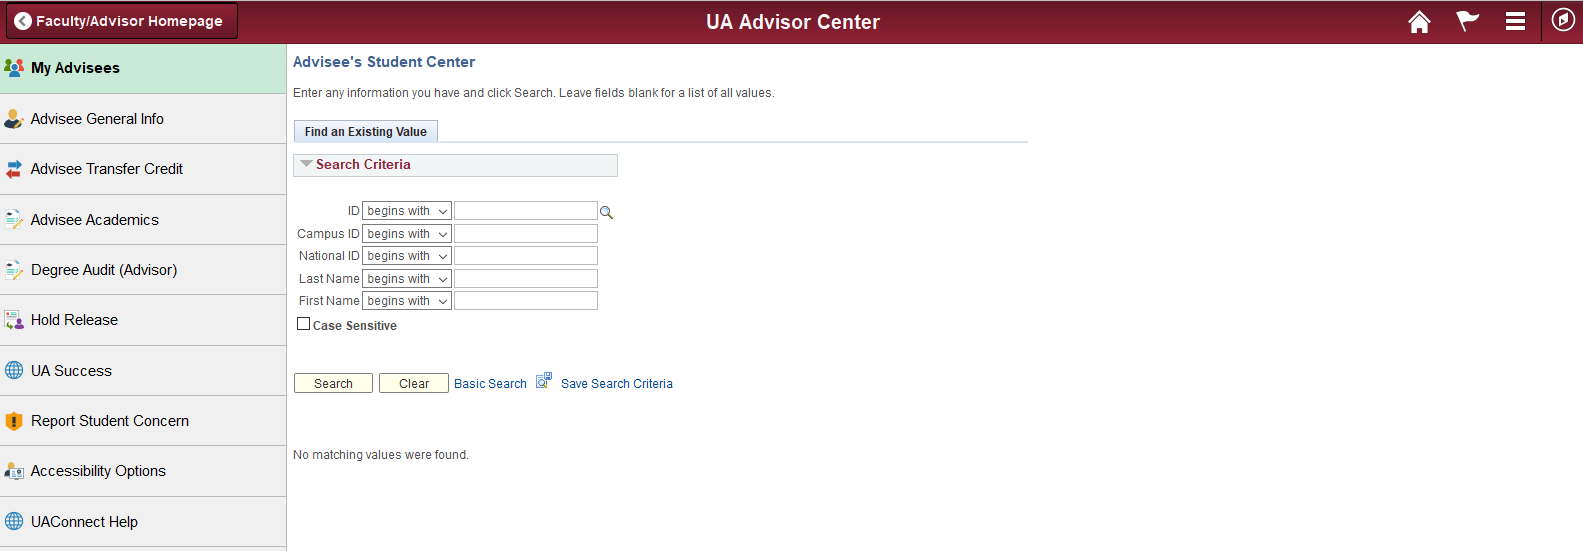 Advisor Student Center - Degree Audit Link